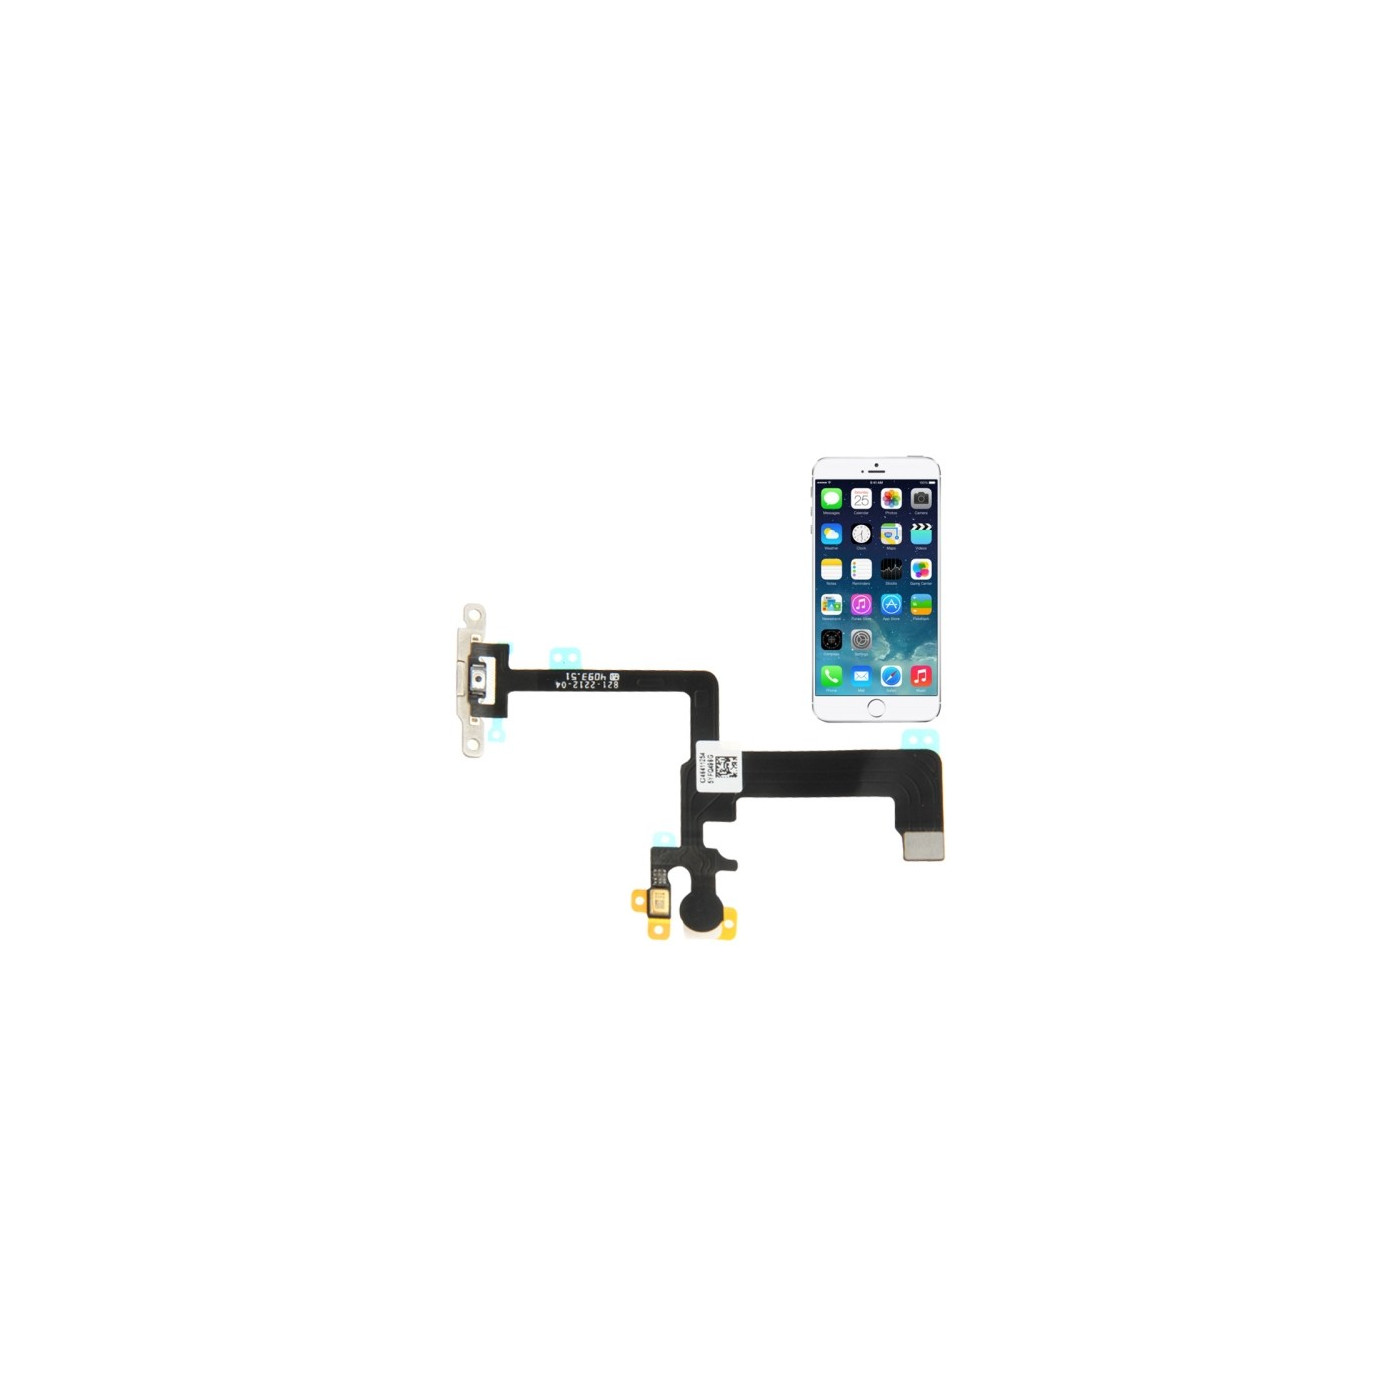 FLAT FLEX for Apple iPhone 6 BUTTON POWER BUTTON ON OFF FLASH MICROPHONE